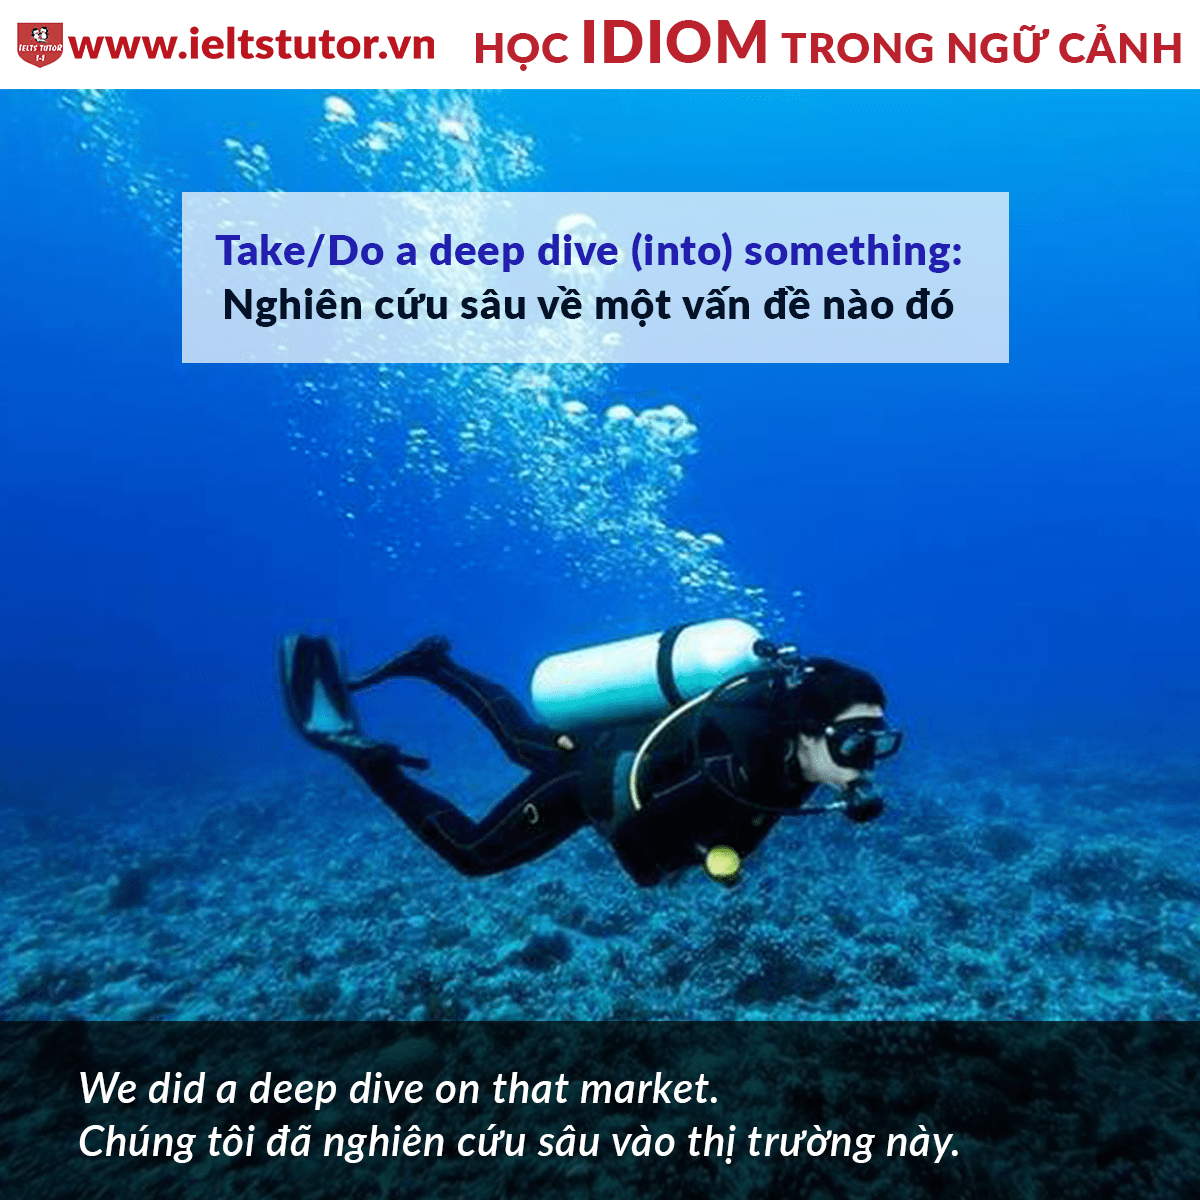 [HỌC IDIOM TRONG NGỮ CẢNH] Take a deep dive into something